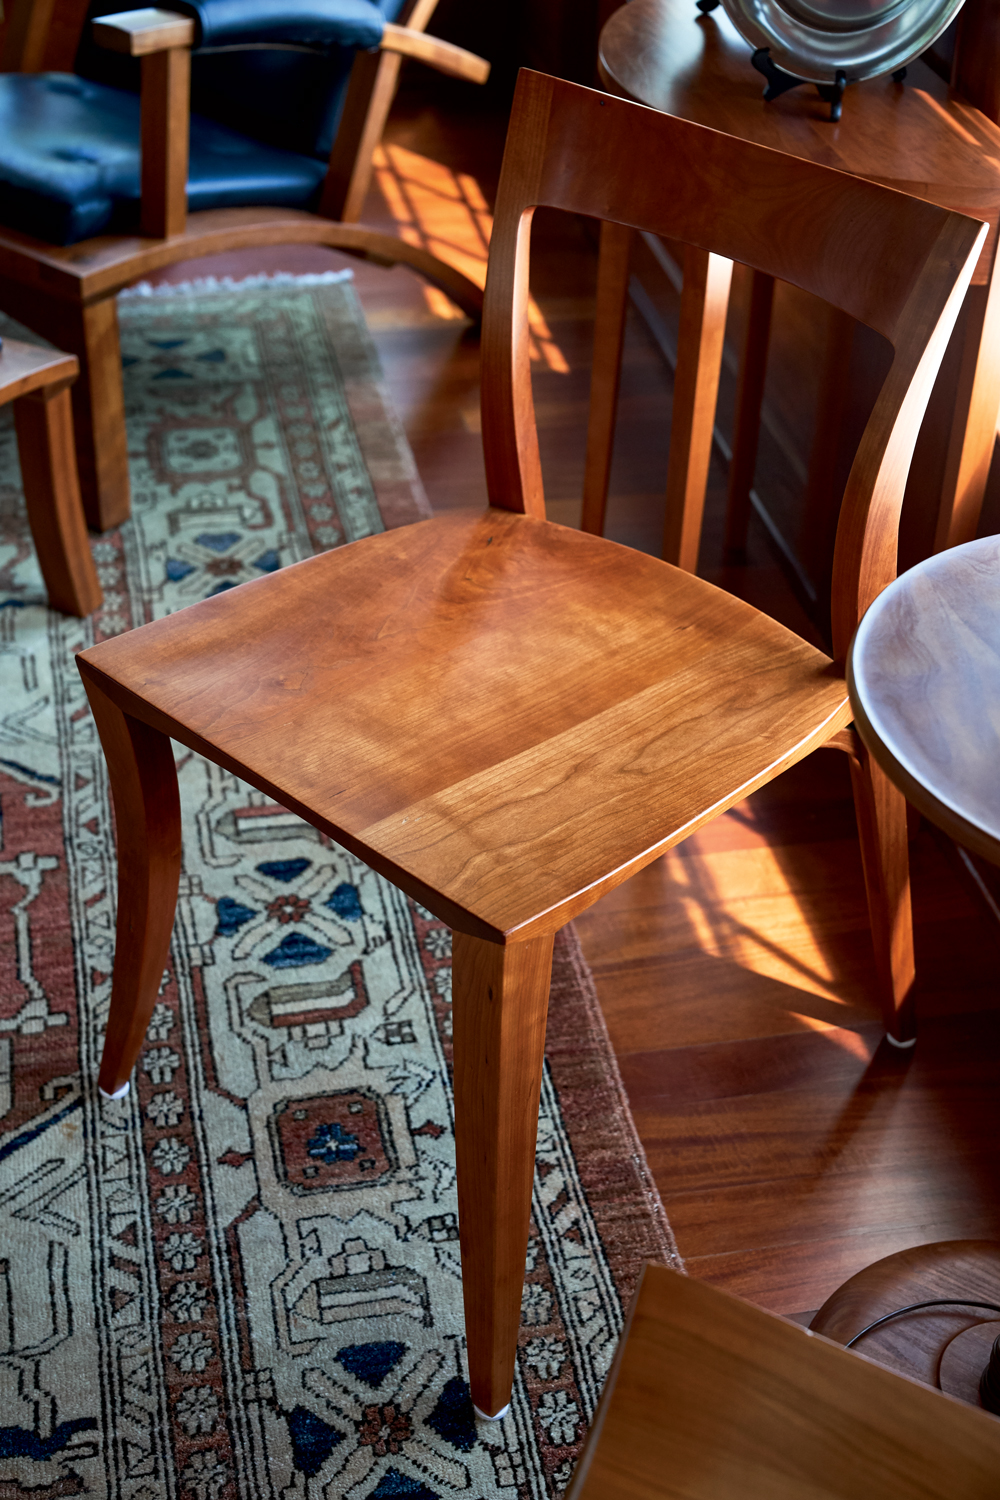 A Cherry Rockport Chair Comes To The Fore Amid Mix Of Thos Moser Furniture Gracing Thomaary S Home